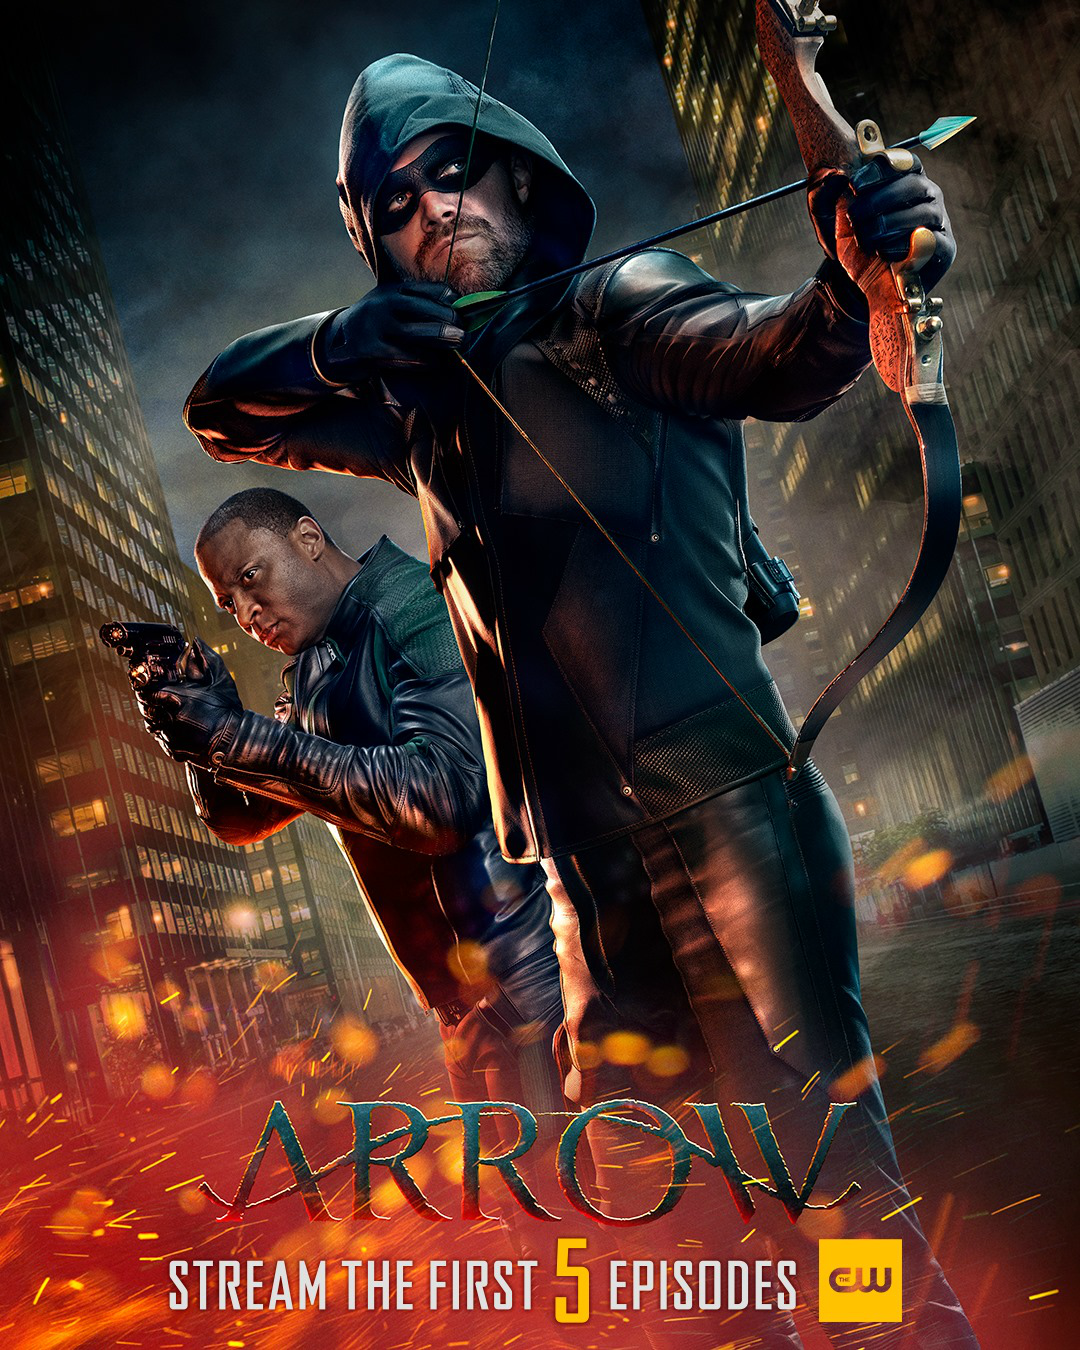 Arrow season 8 poster - Stream the First 5 Episodes.png